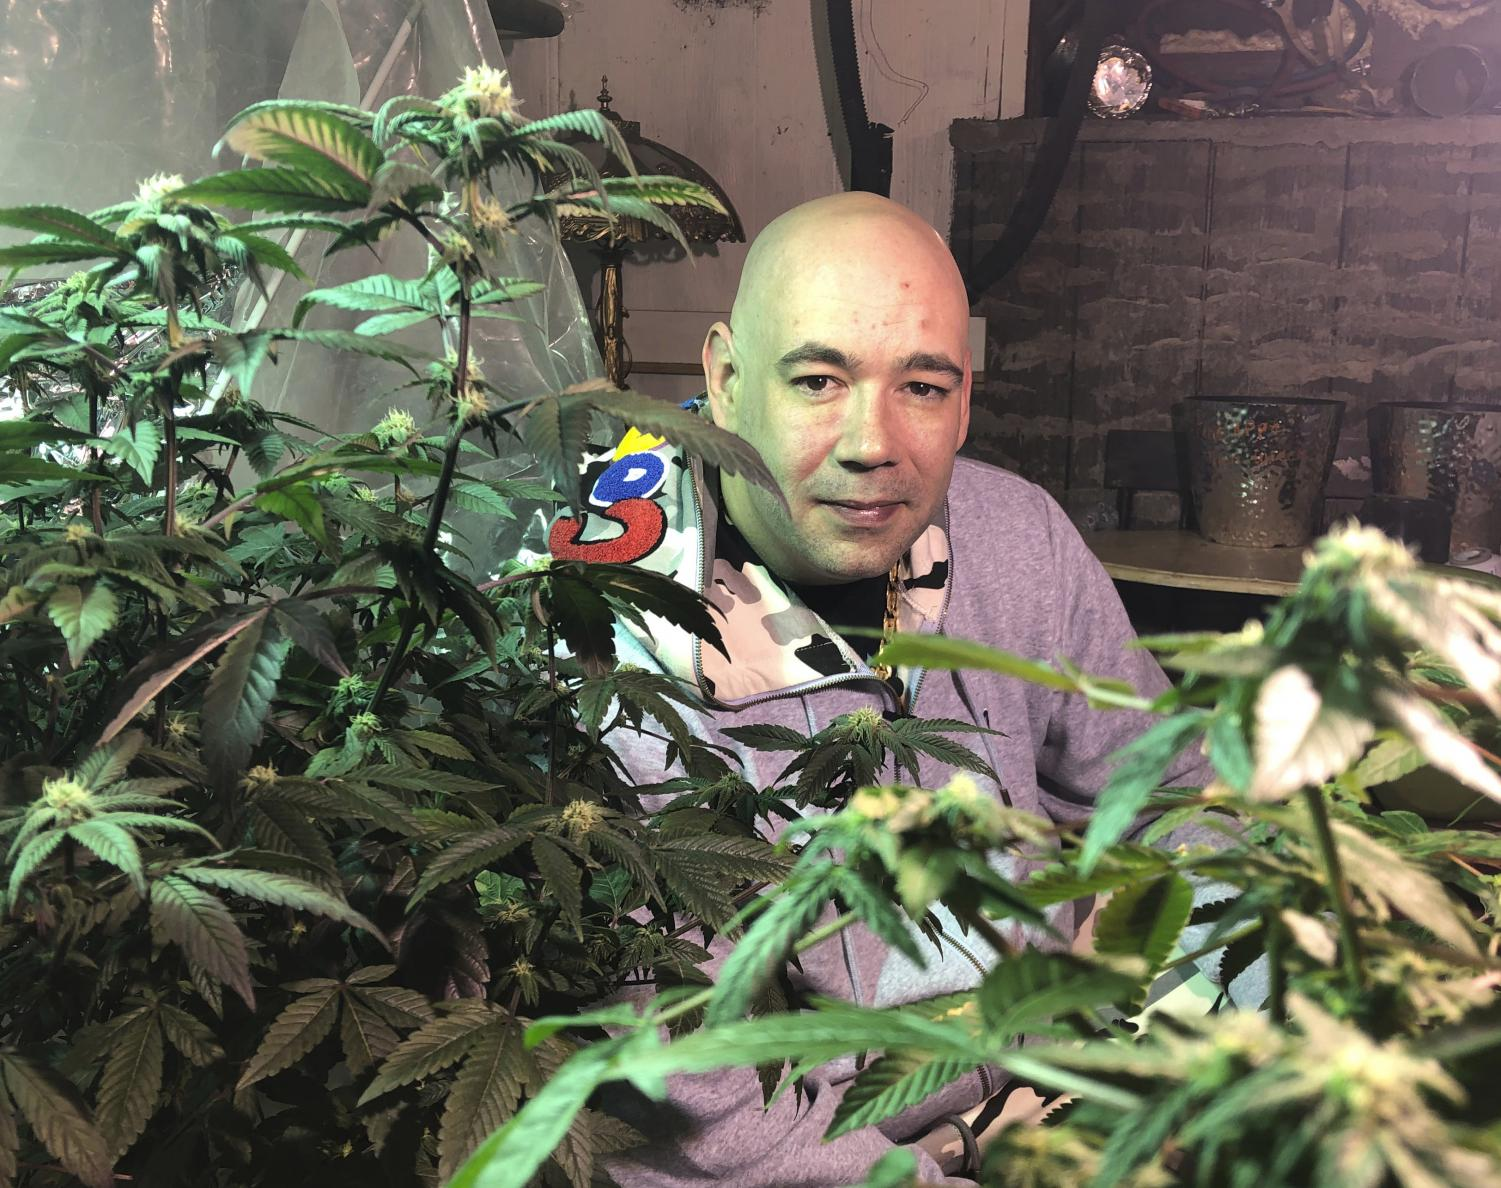 In this April 8, 2019 photo, Bernie Barriere poses for a photo as he tends to two marijuana plants he legally grows in a basement in Bennington, Vt.